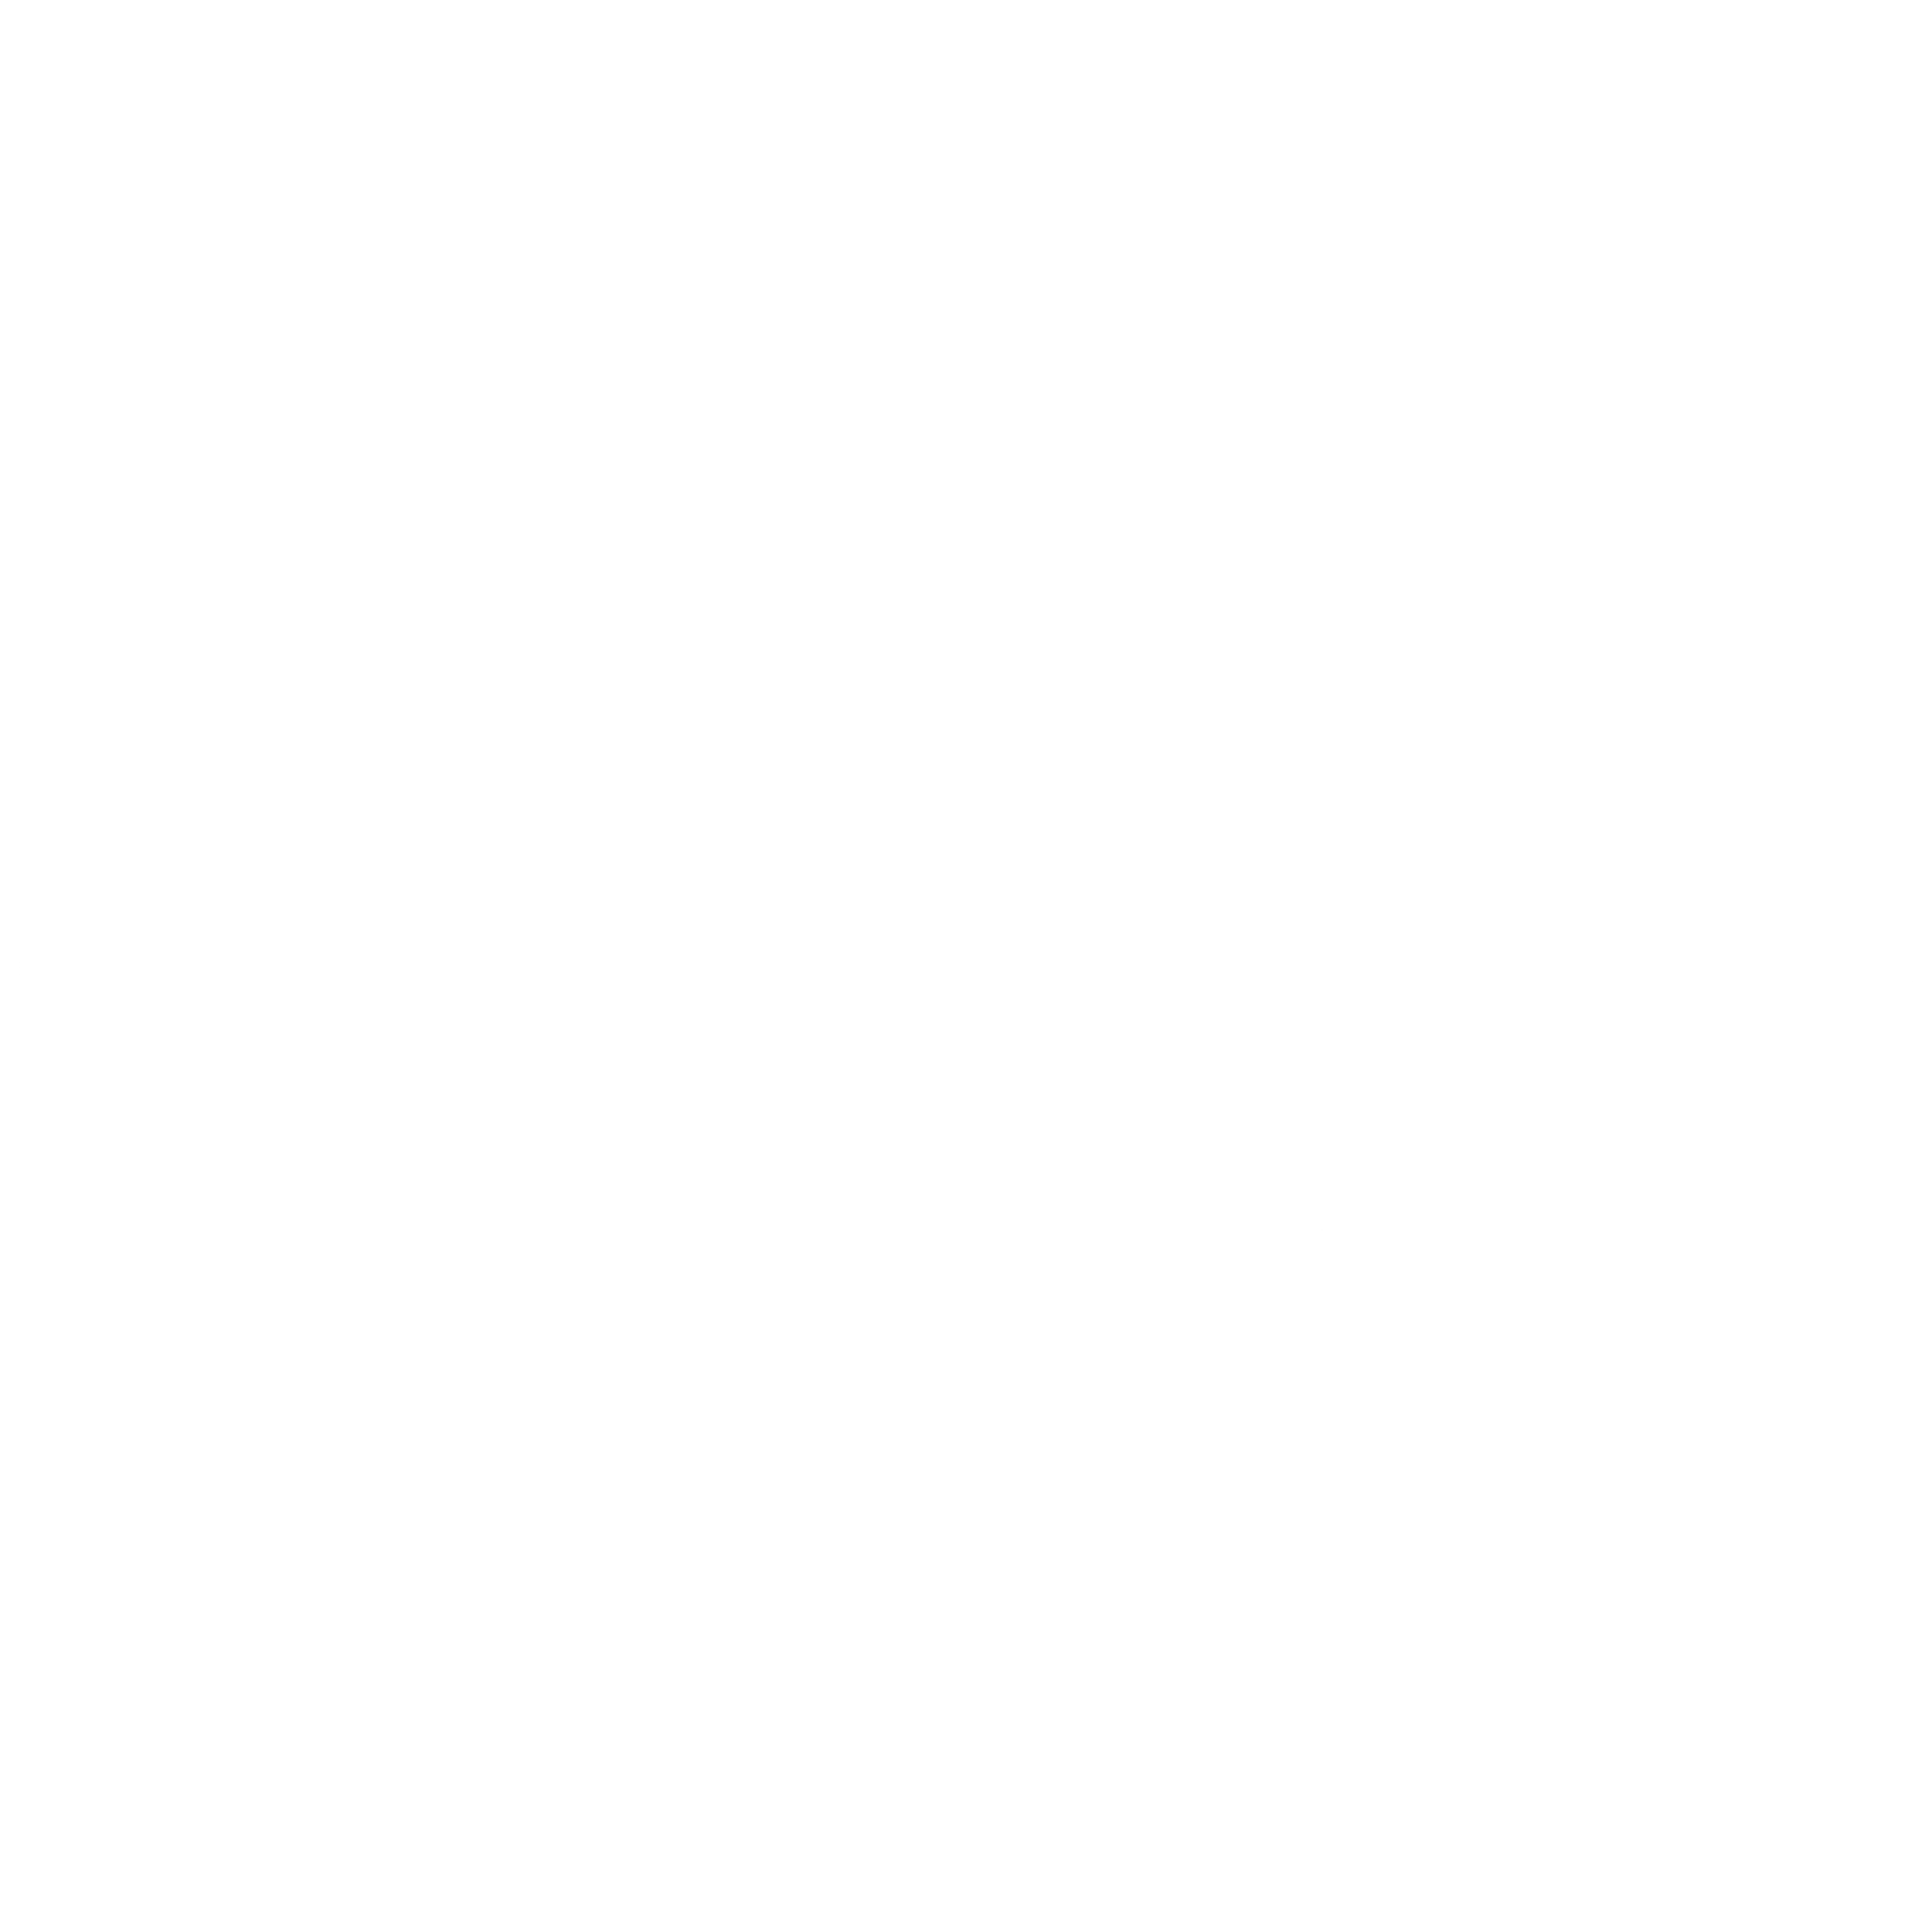 QUIANA SMITH, Realtor®